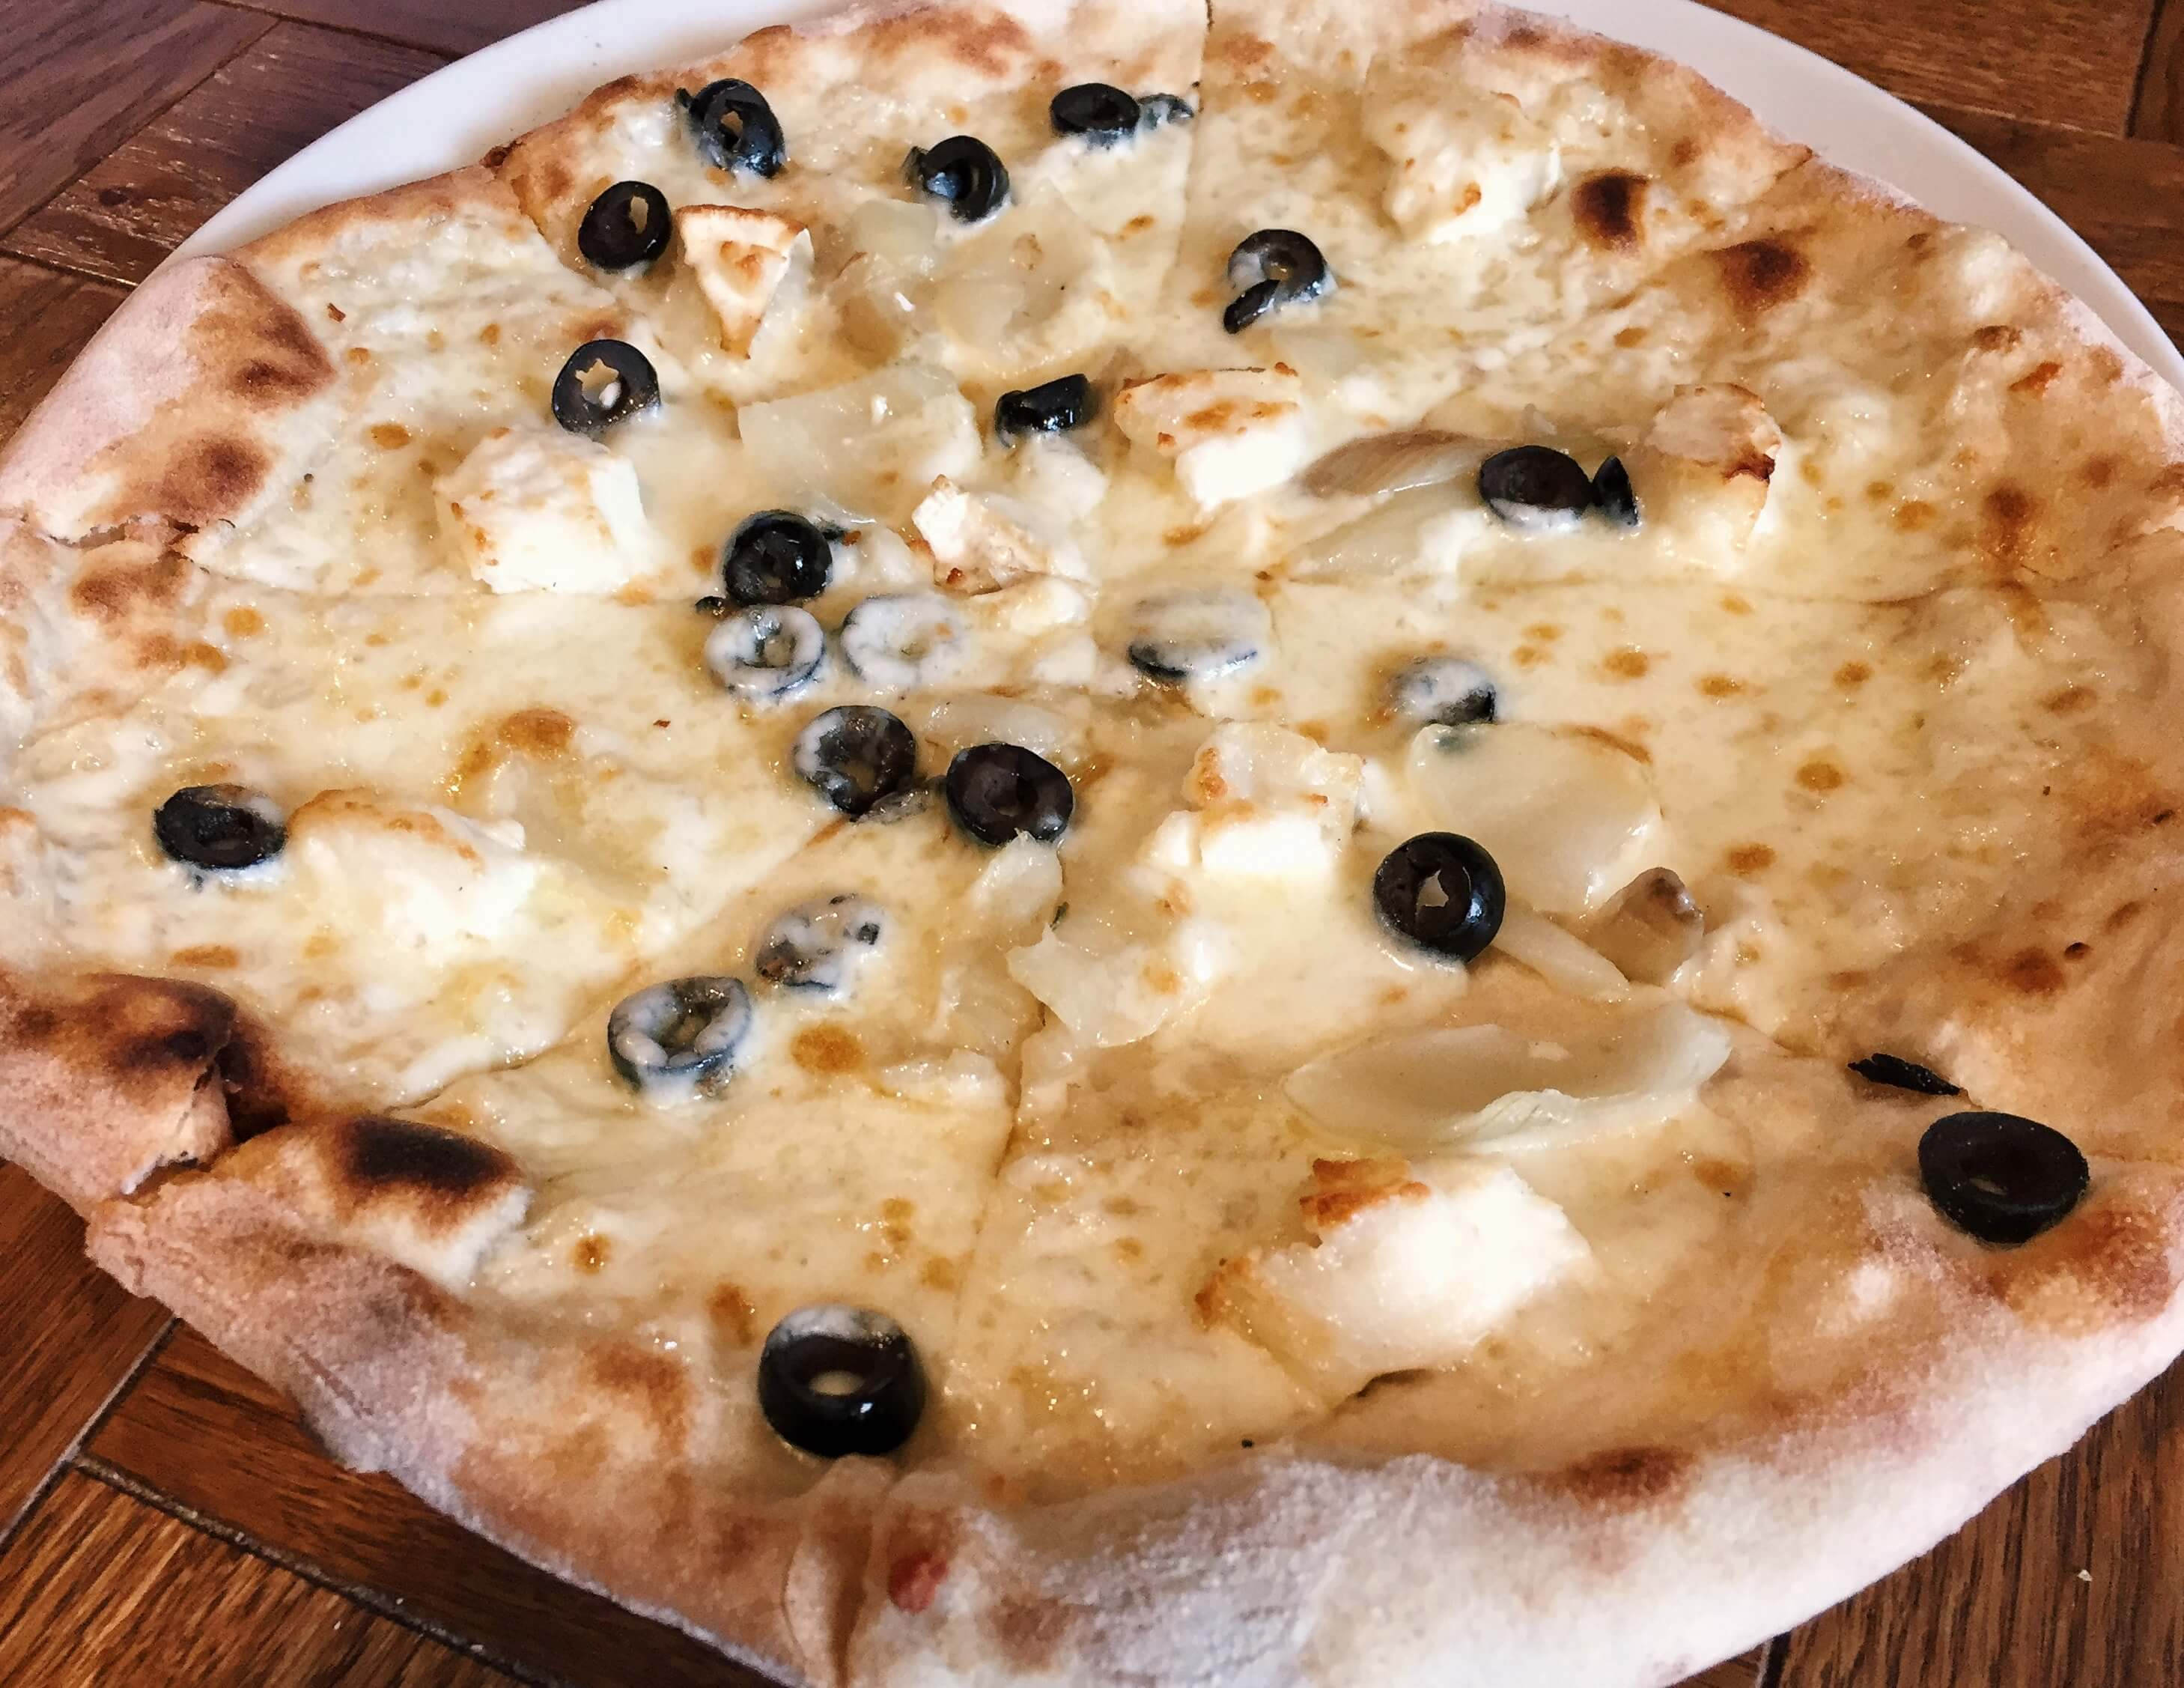 Goats cheese, roasted onion and black olive pizza from Firebrand in Marylebone, London